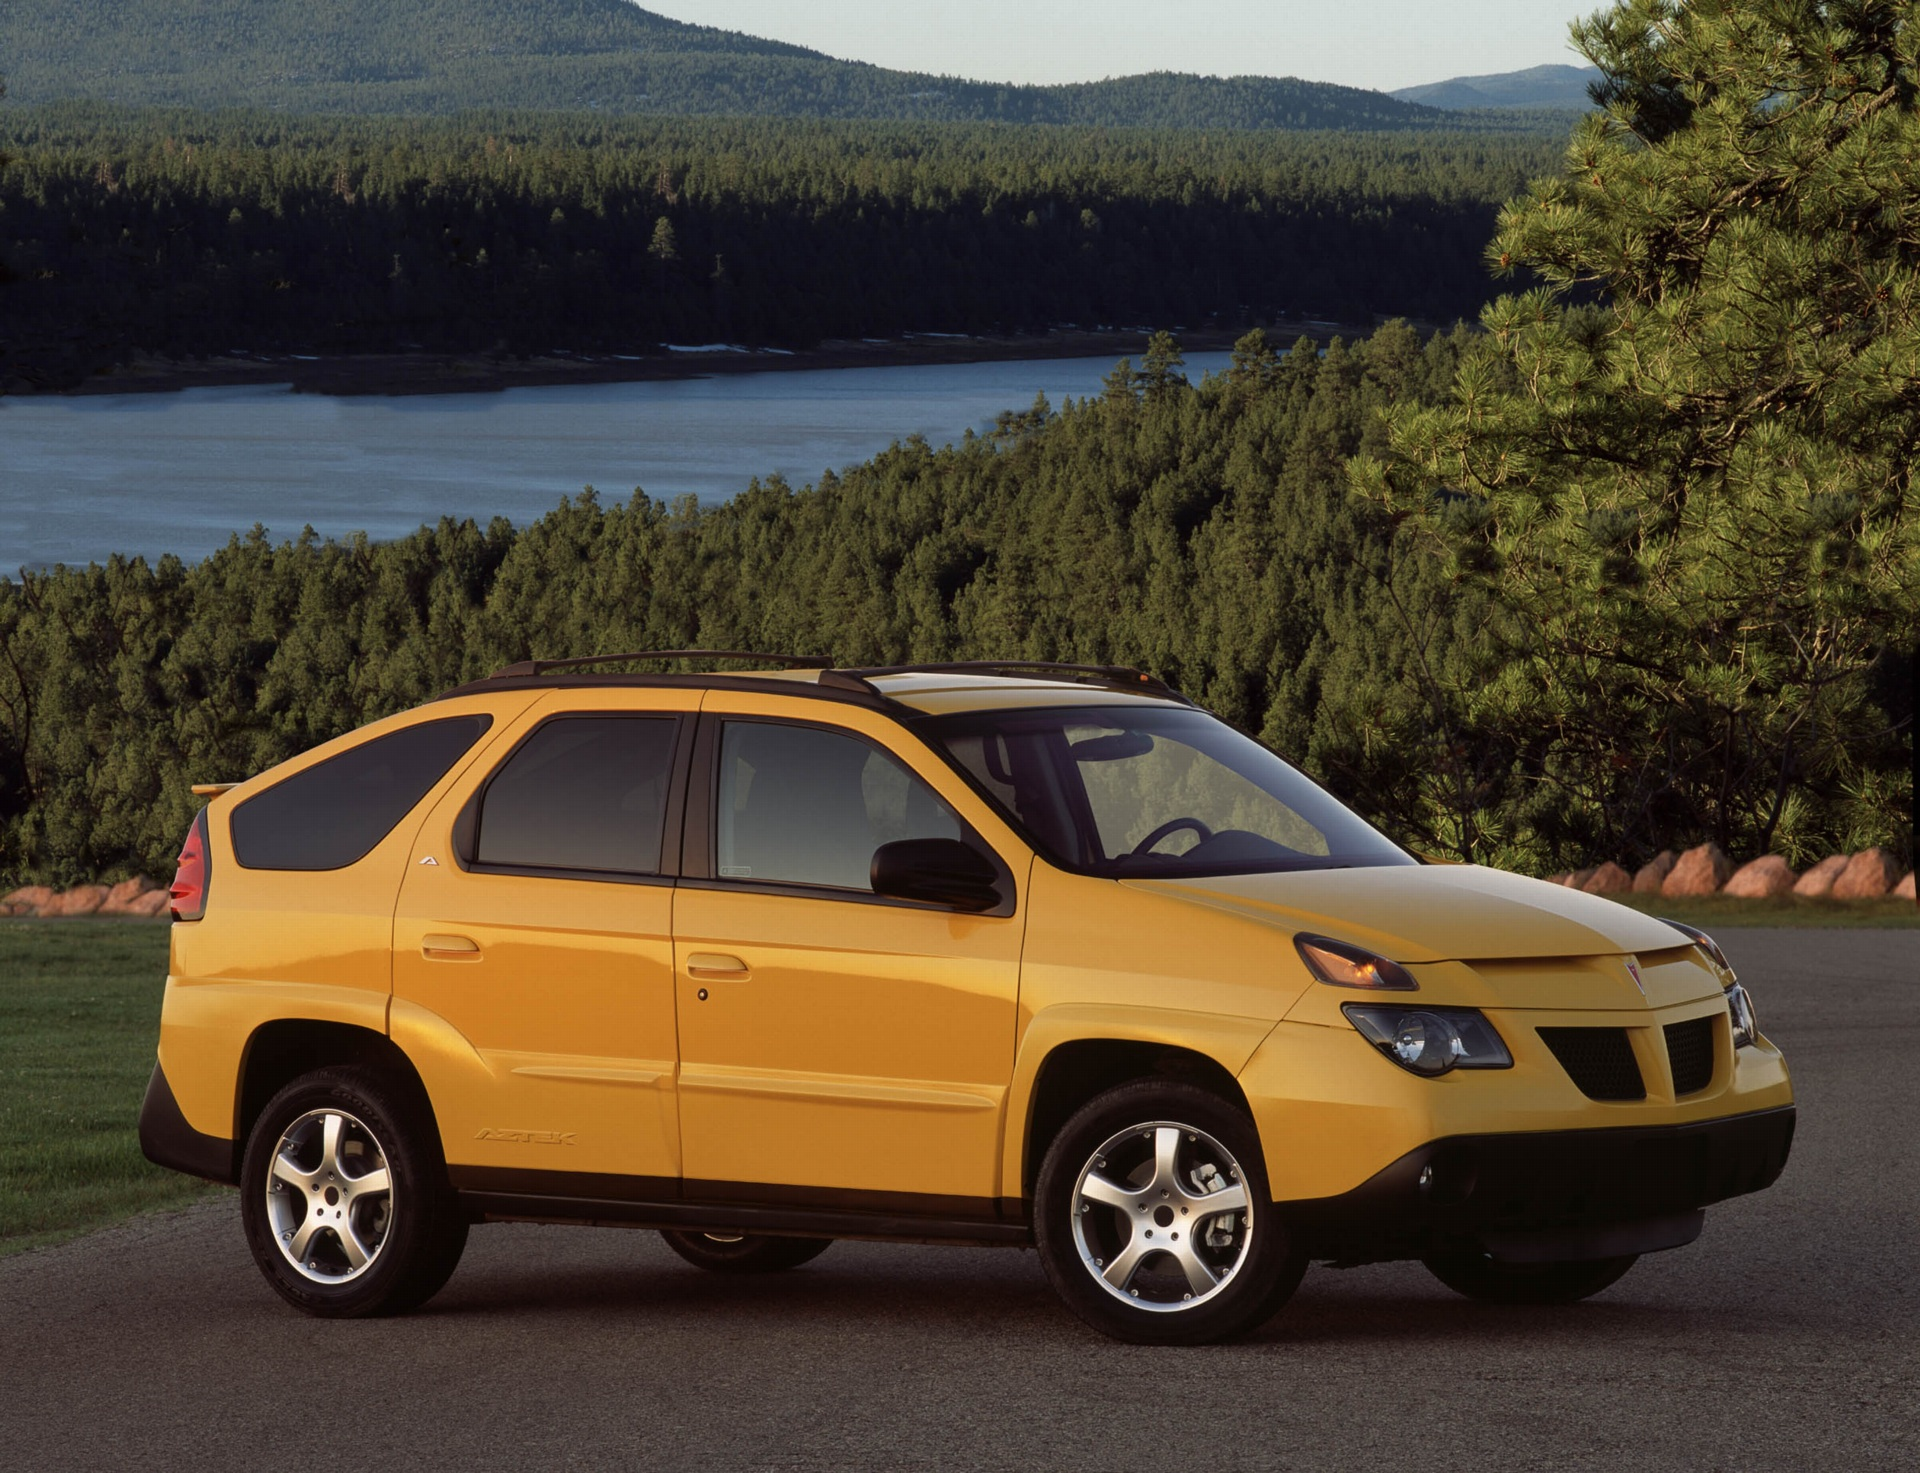 2002 Pontiac Aztek Pictures History Value Research News - conceptcarz.com : pontiac aztek tent package - memphite.com